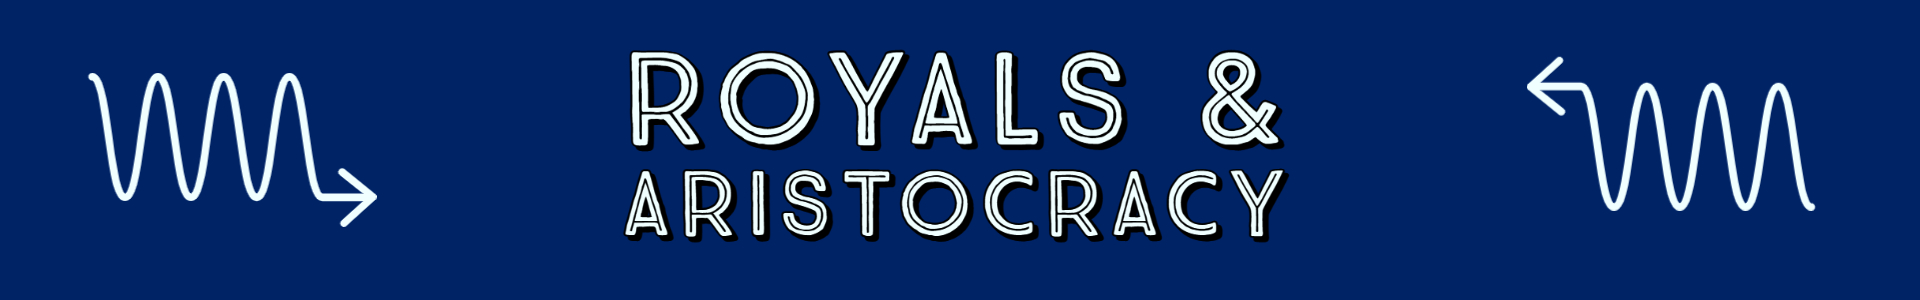 Royals and Aristocracy